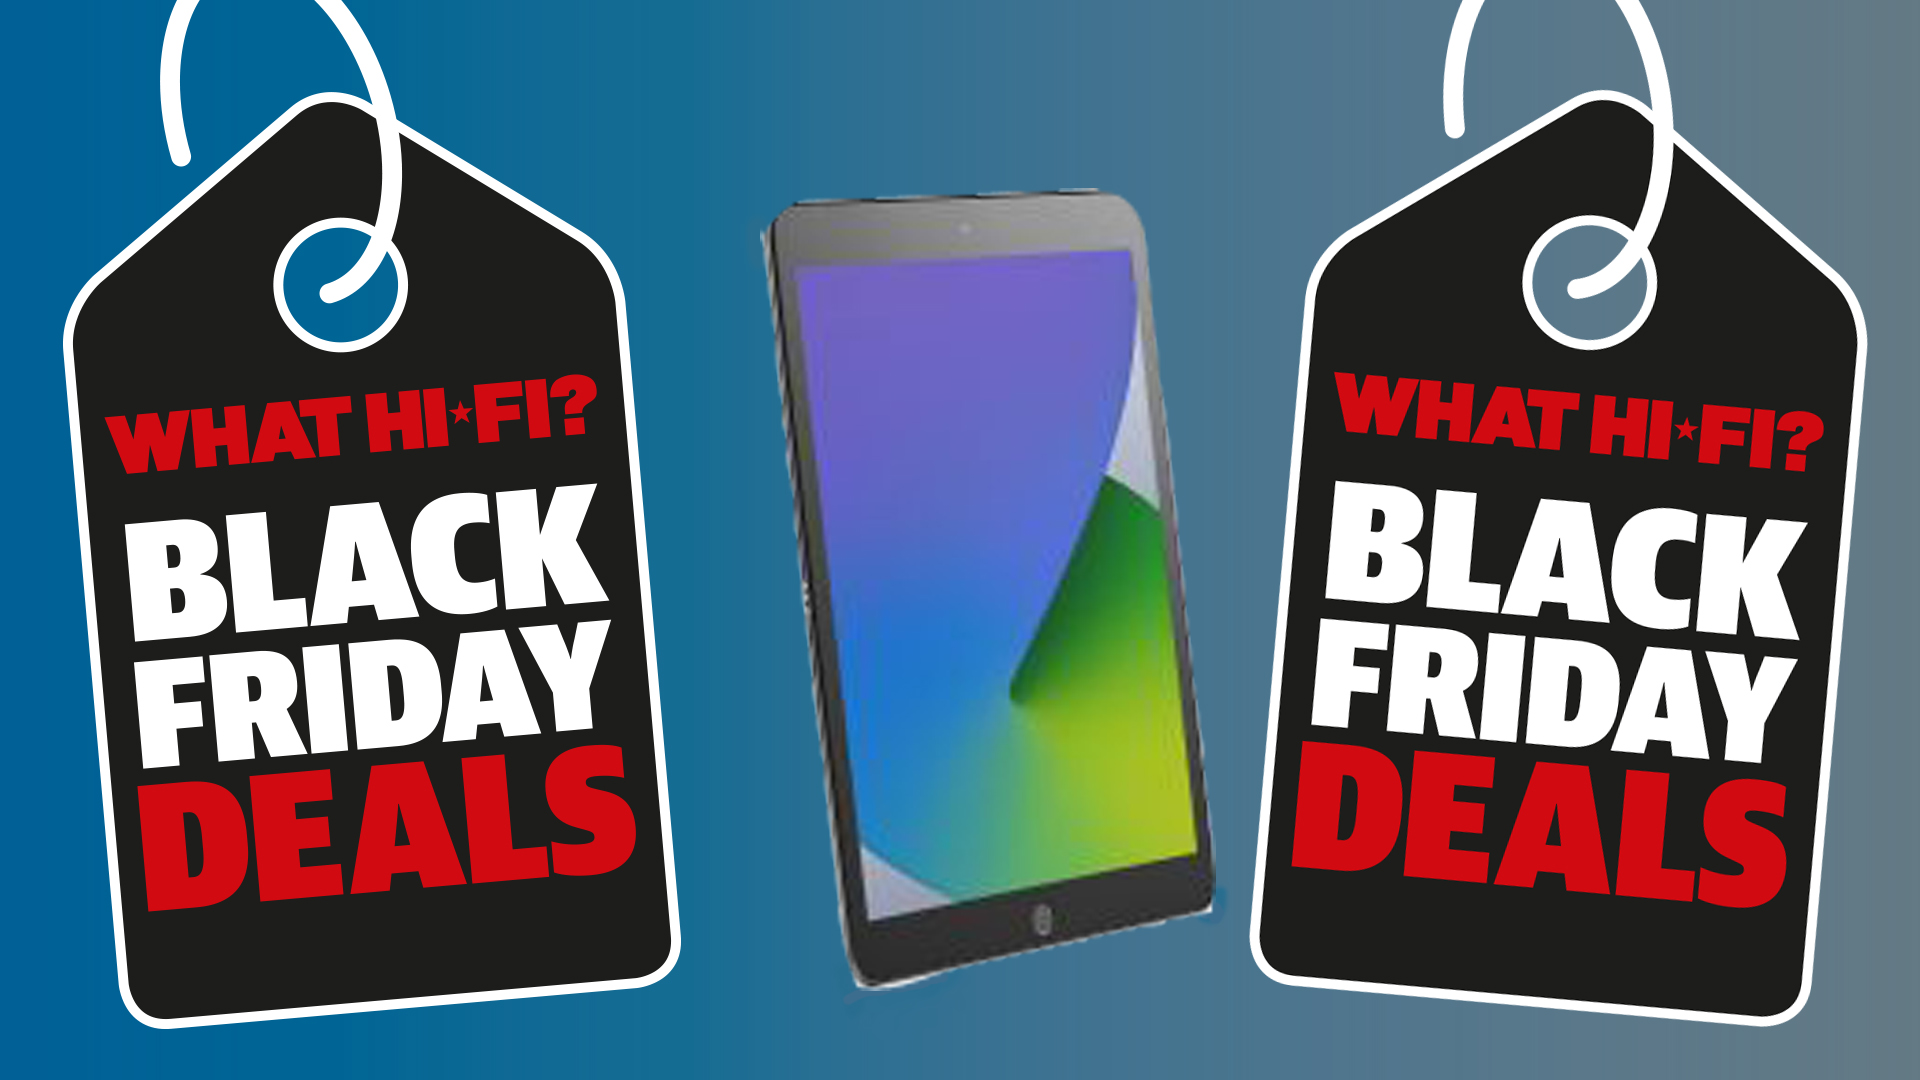 Best Black Friday Tablet Deals 2020 Ipads Fire Tablets Android What Hi Fi